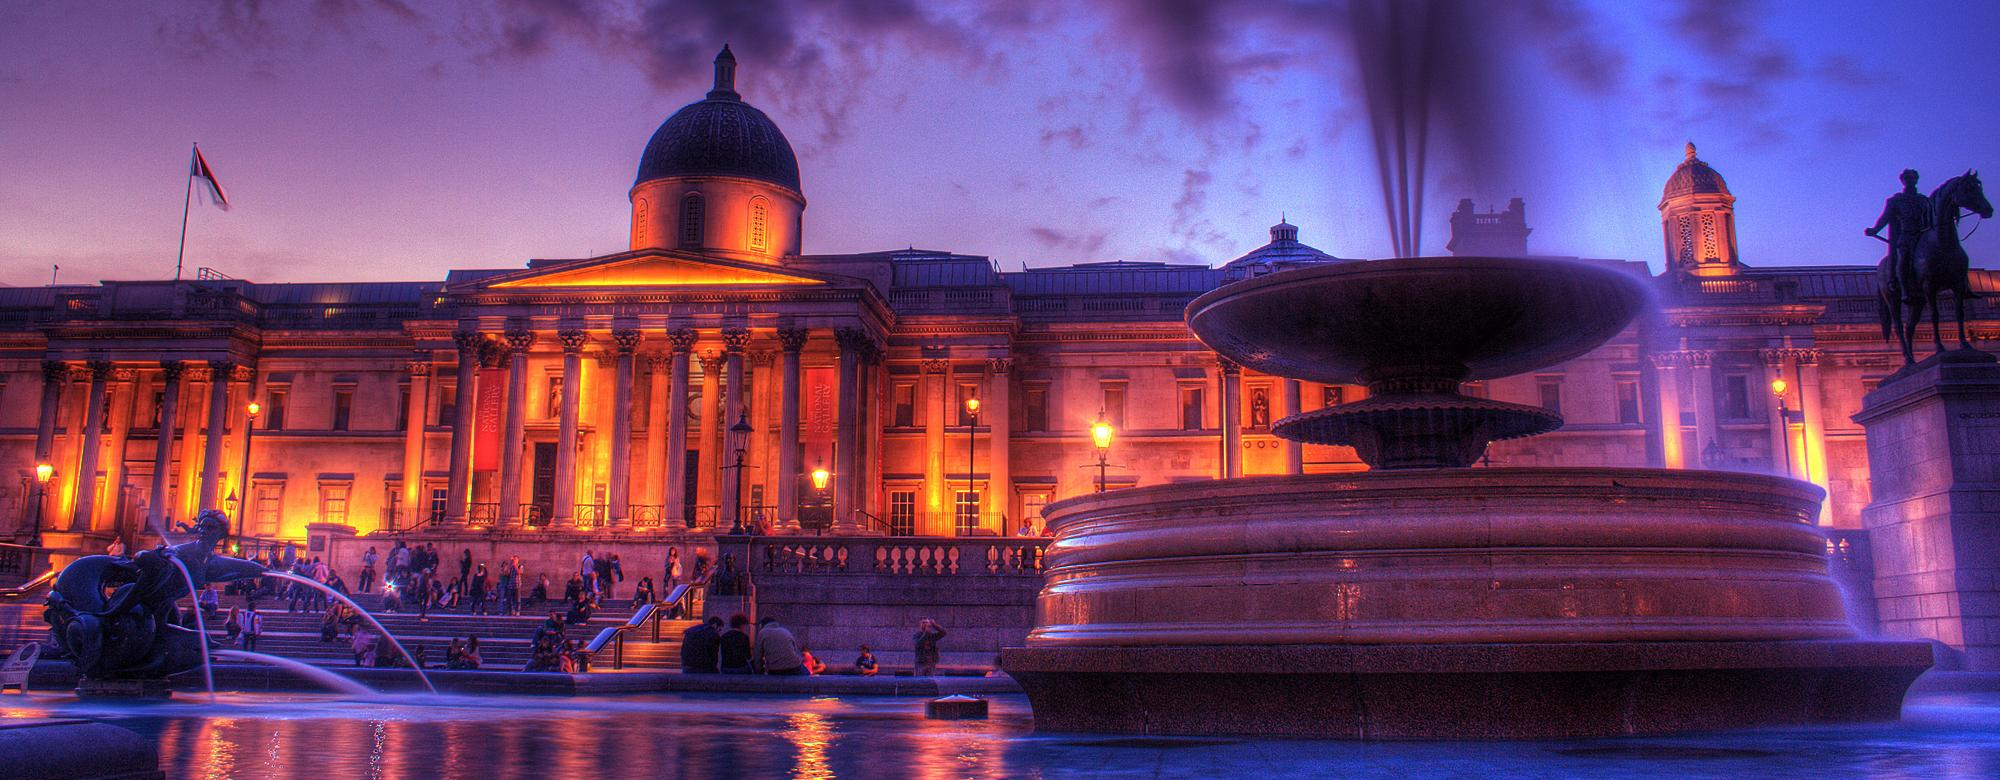 National Gallery London Exterior